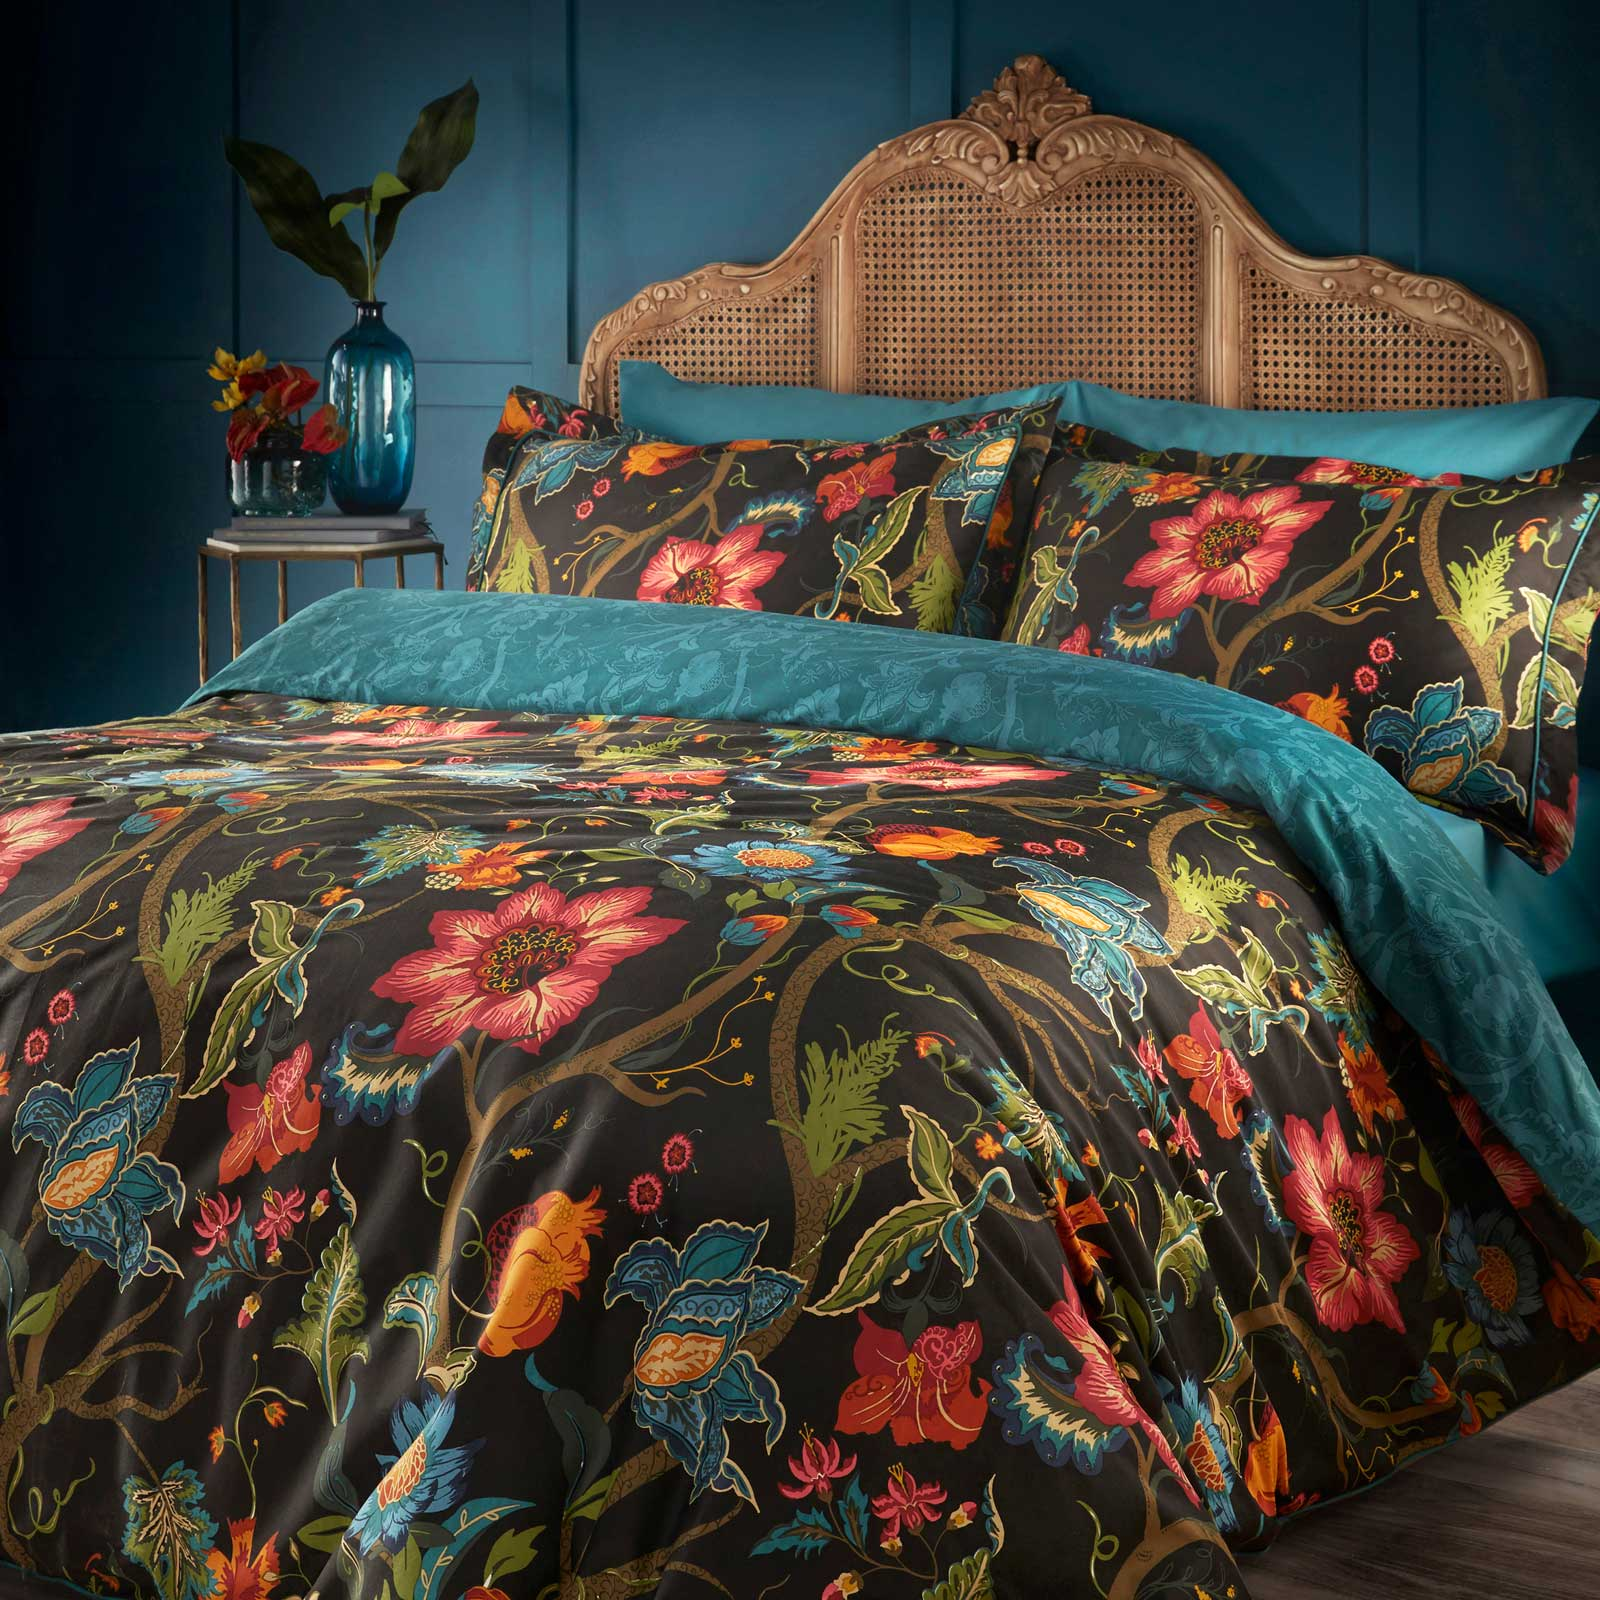 Botanist Floral 200 Thread Count 100% Cotton Black Duvet Cover Set - Single - Ideal Textiles